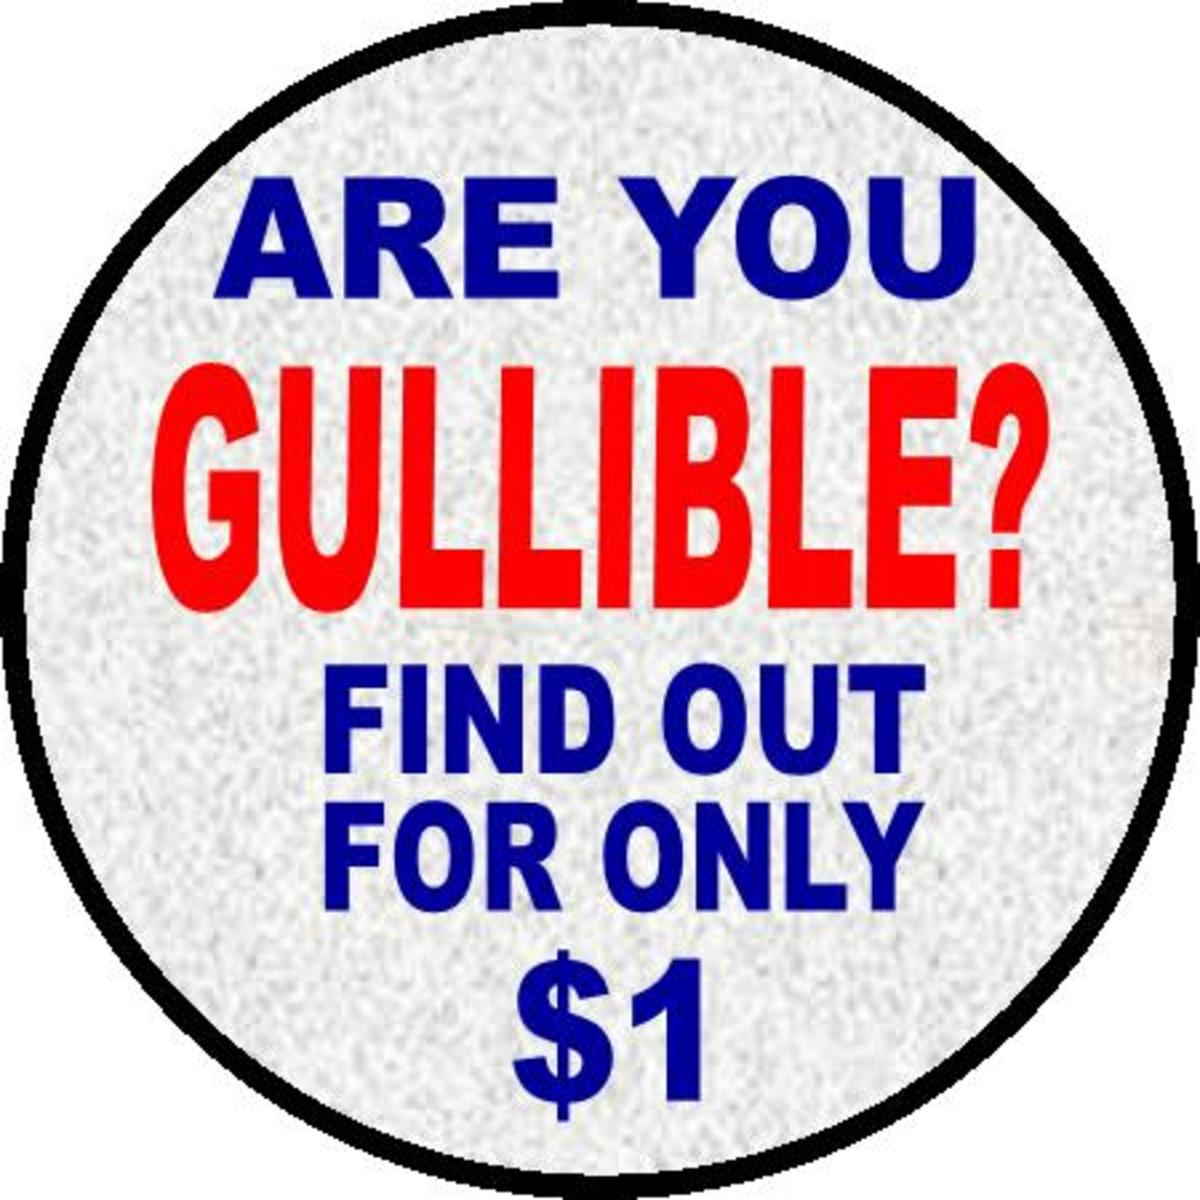 How Does a Person Become Gullible and Why? How Can You Tell If You Are? How Can It Be Corrected?